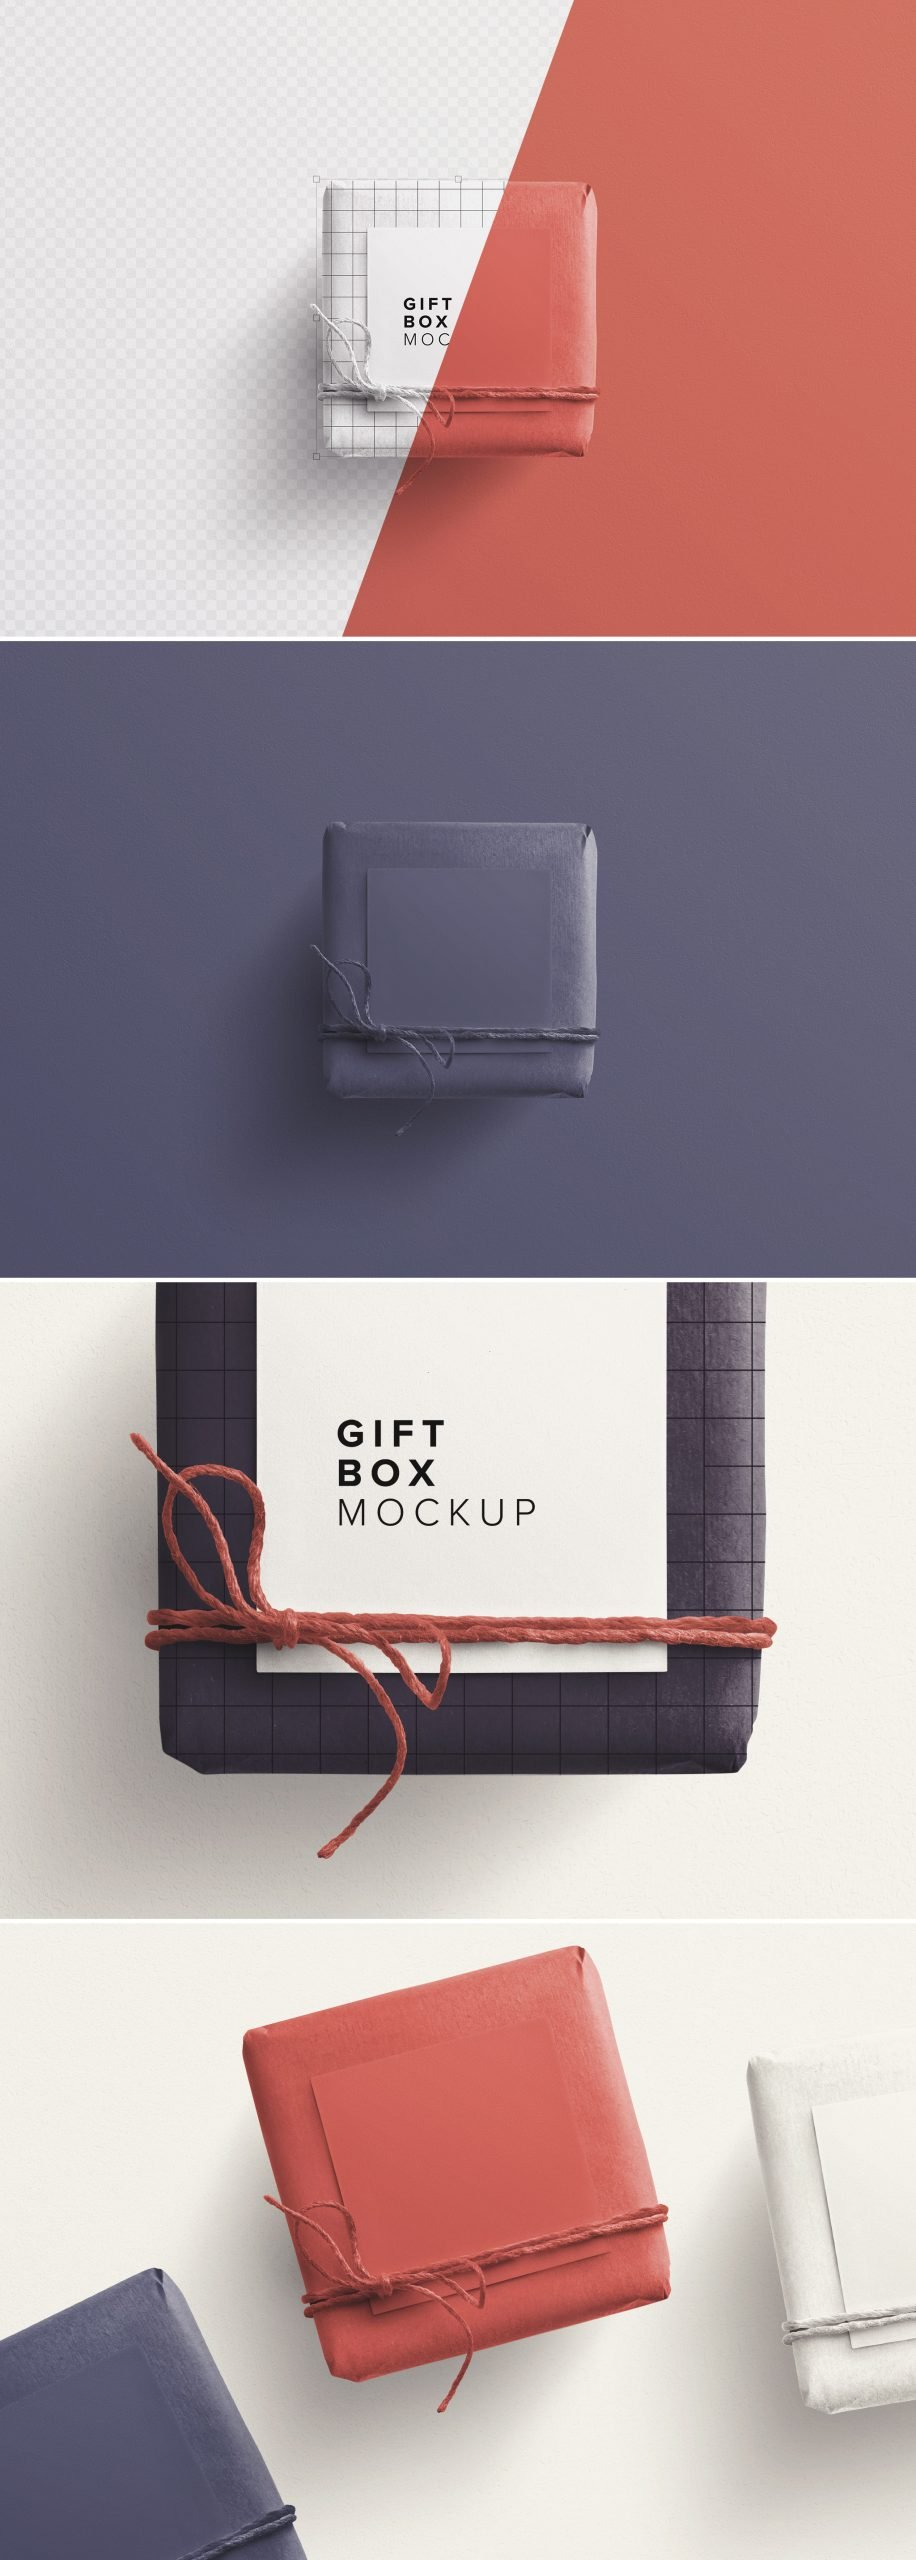 gift box mockup w twine n gift tag preview 1 scaled